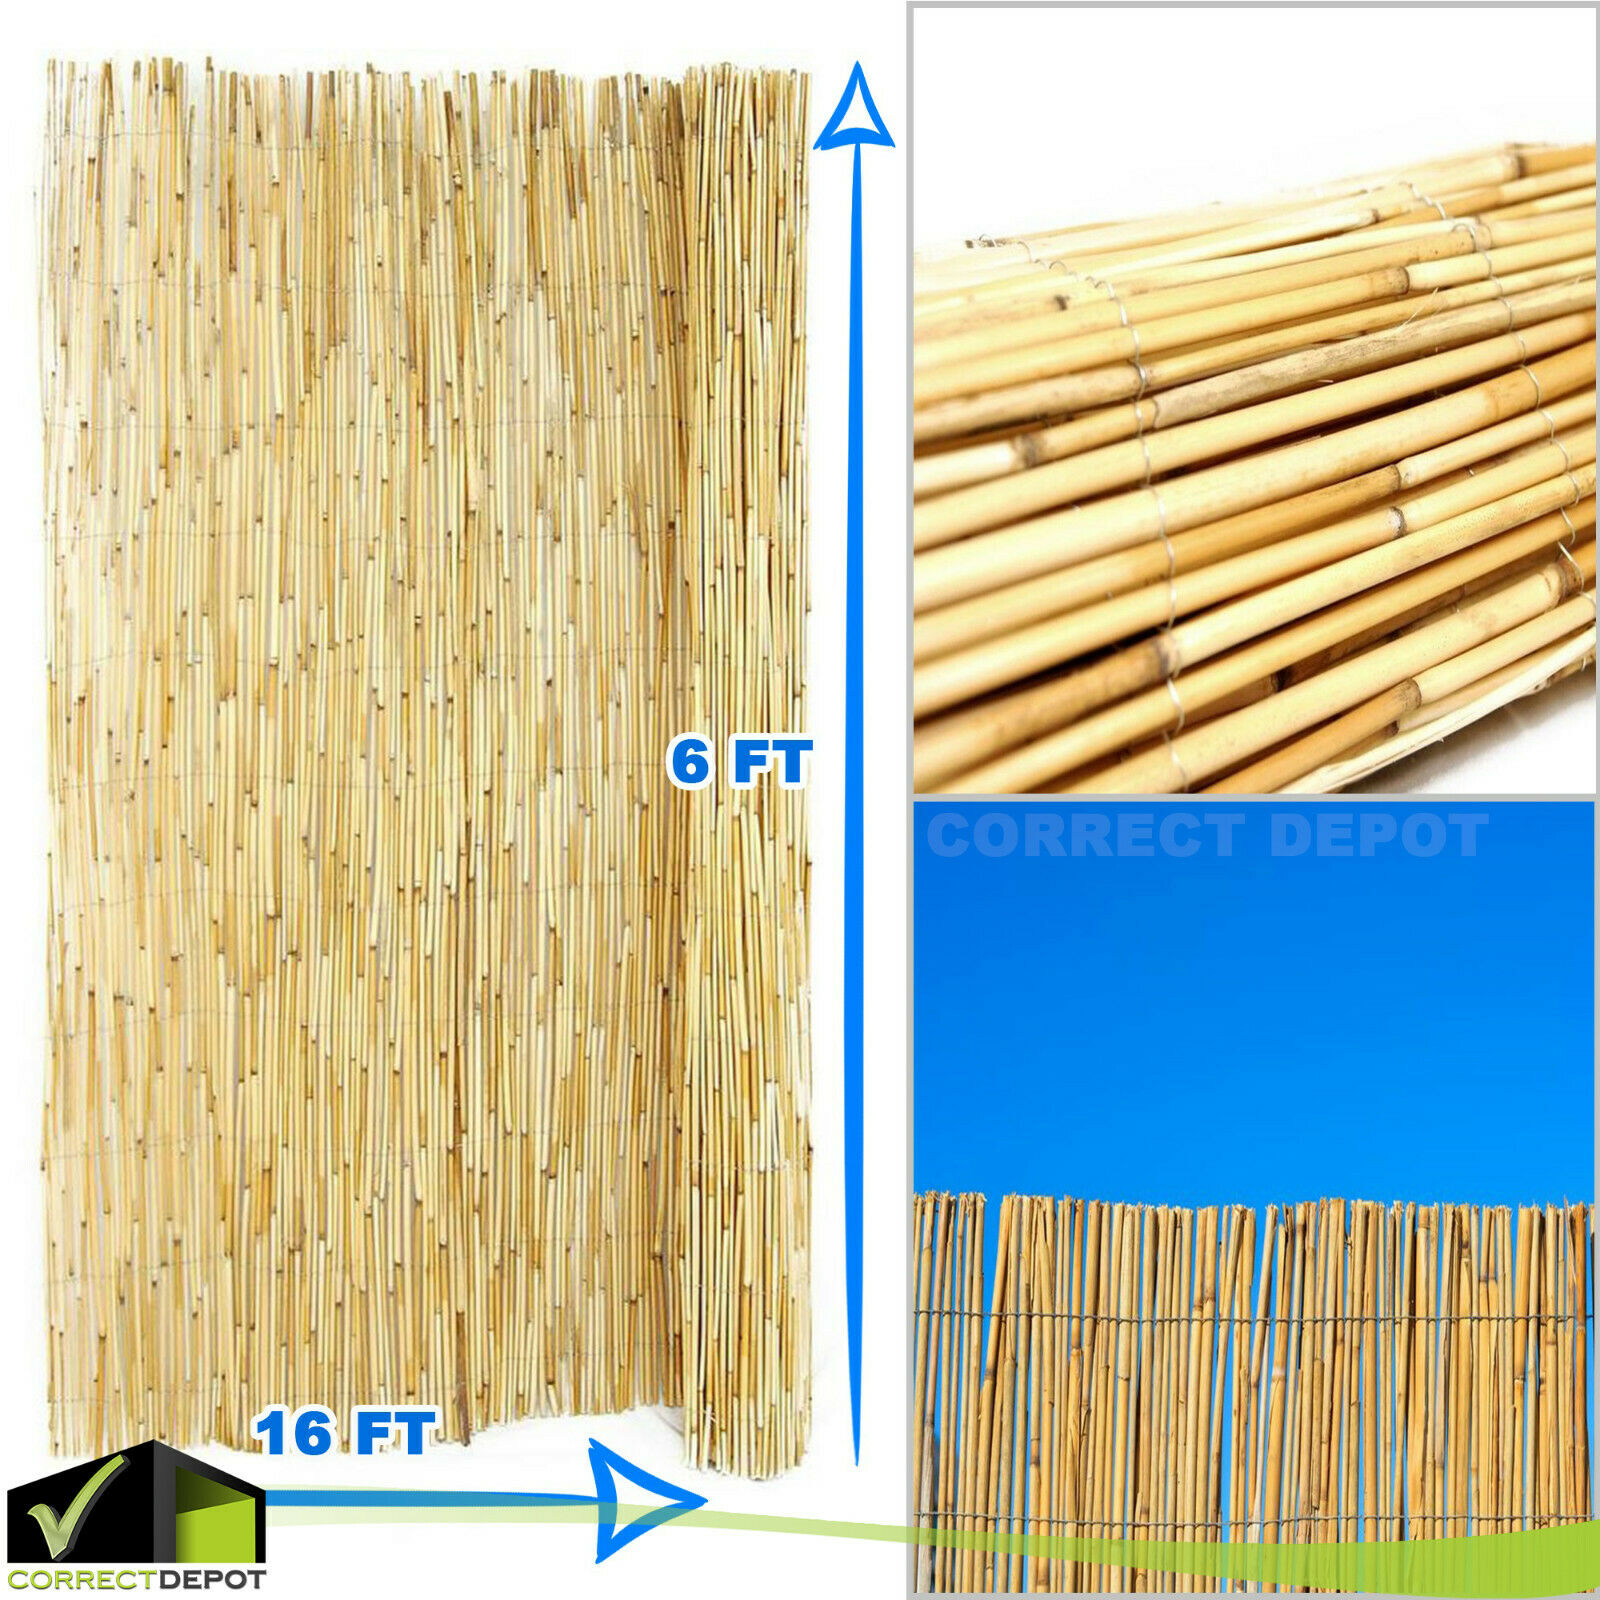 Details about 6x16' Backyard BAMBOO Reed FENCE Tiki Bar Privacy Screen  Outdoor Garden Lawn